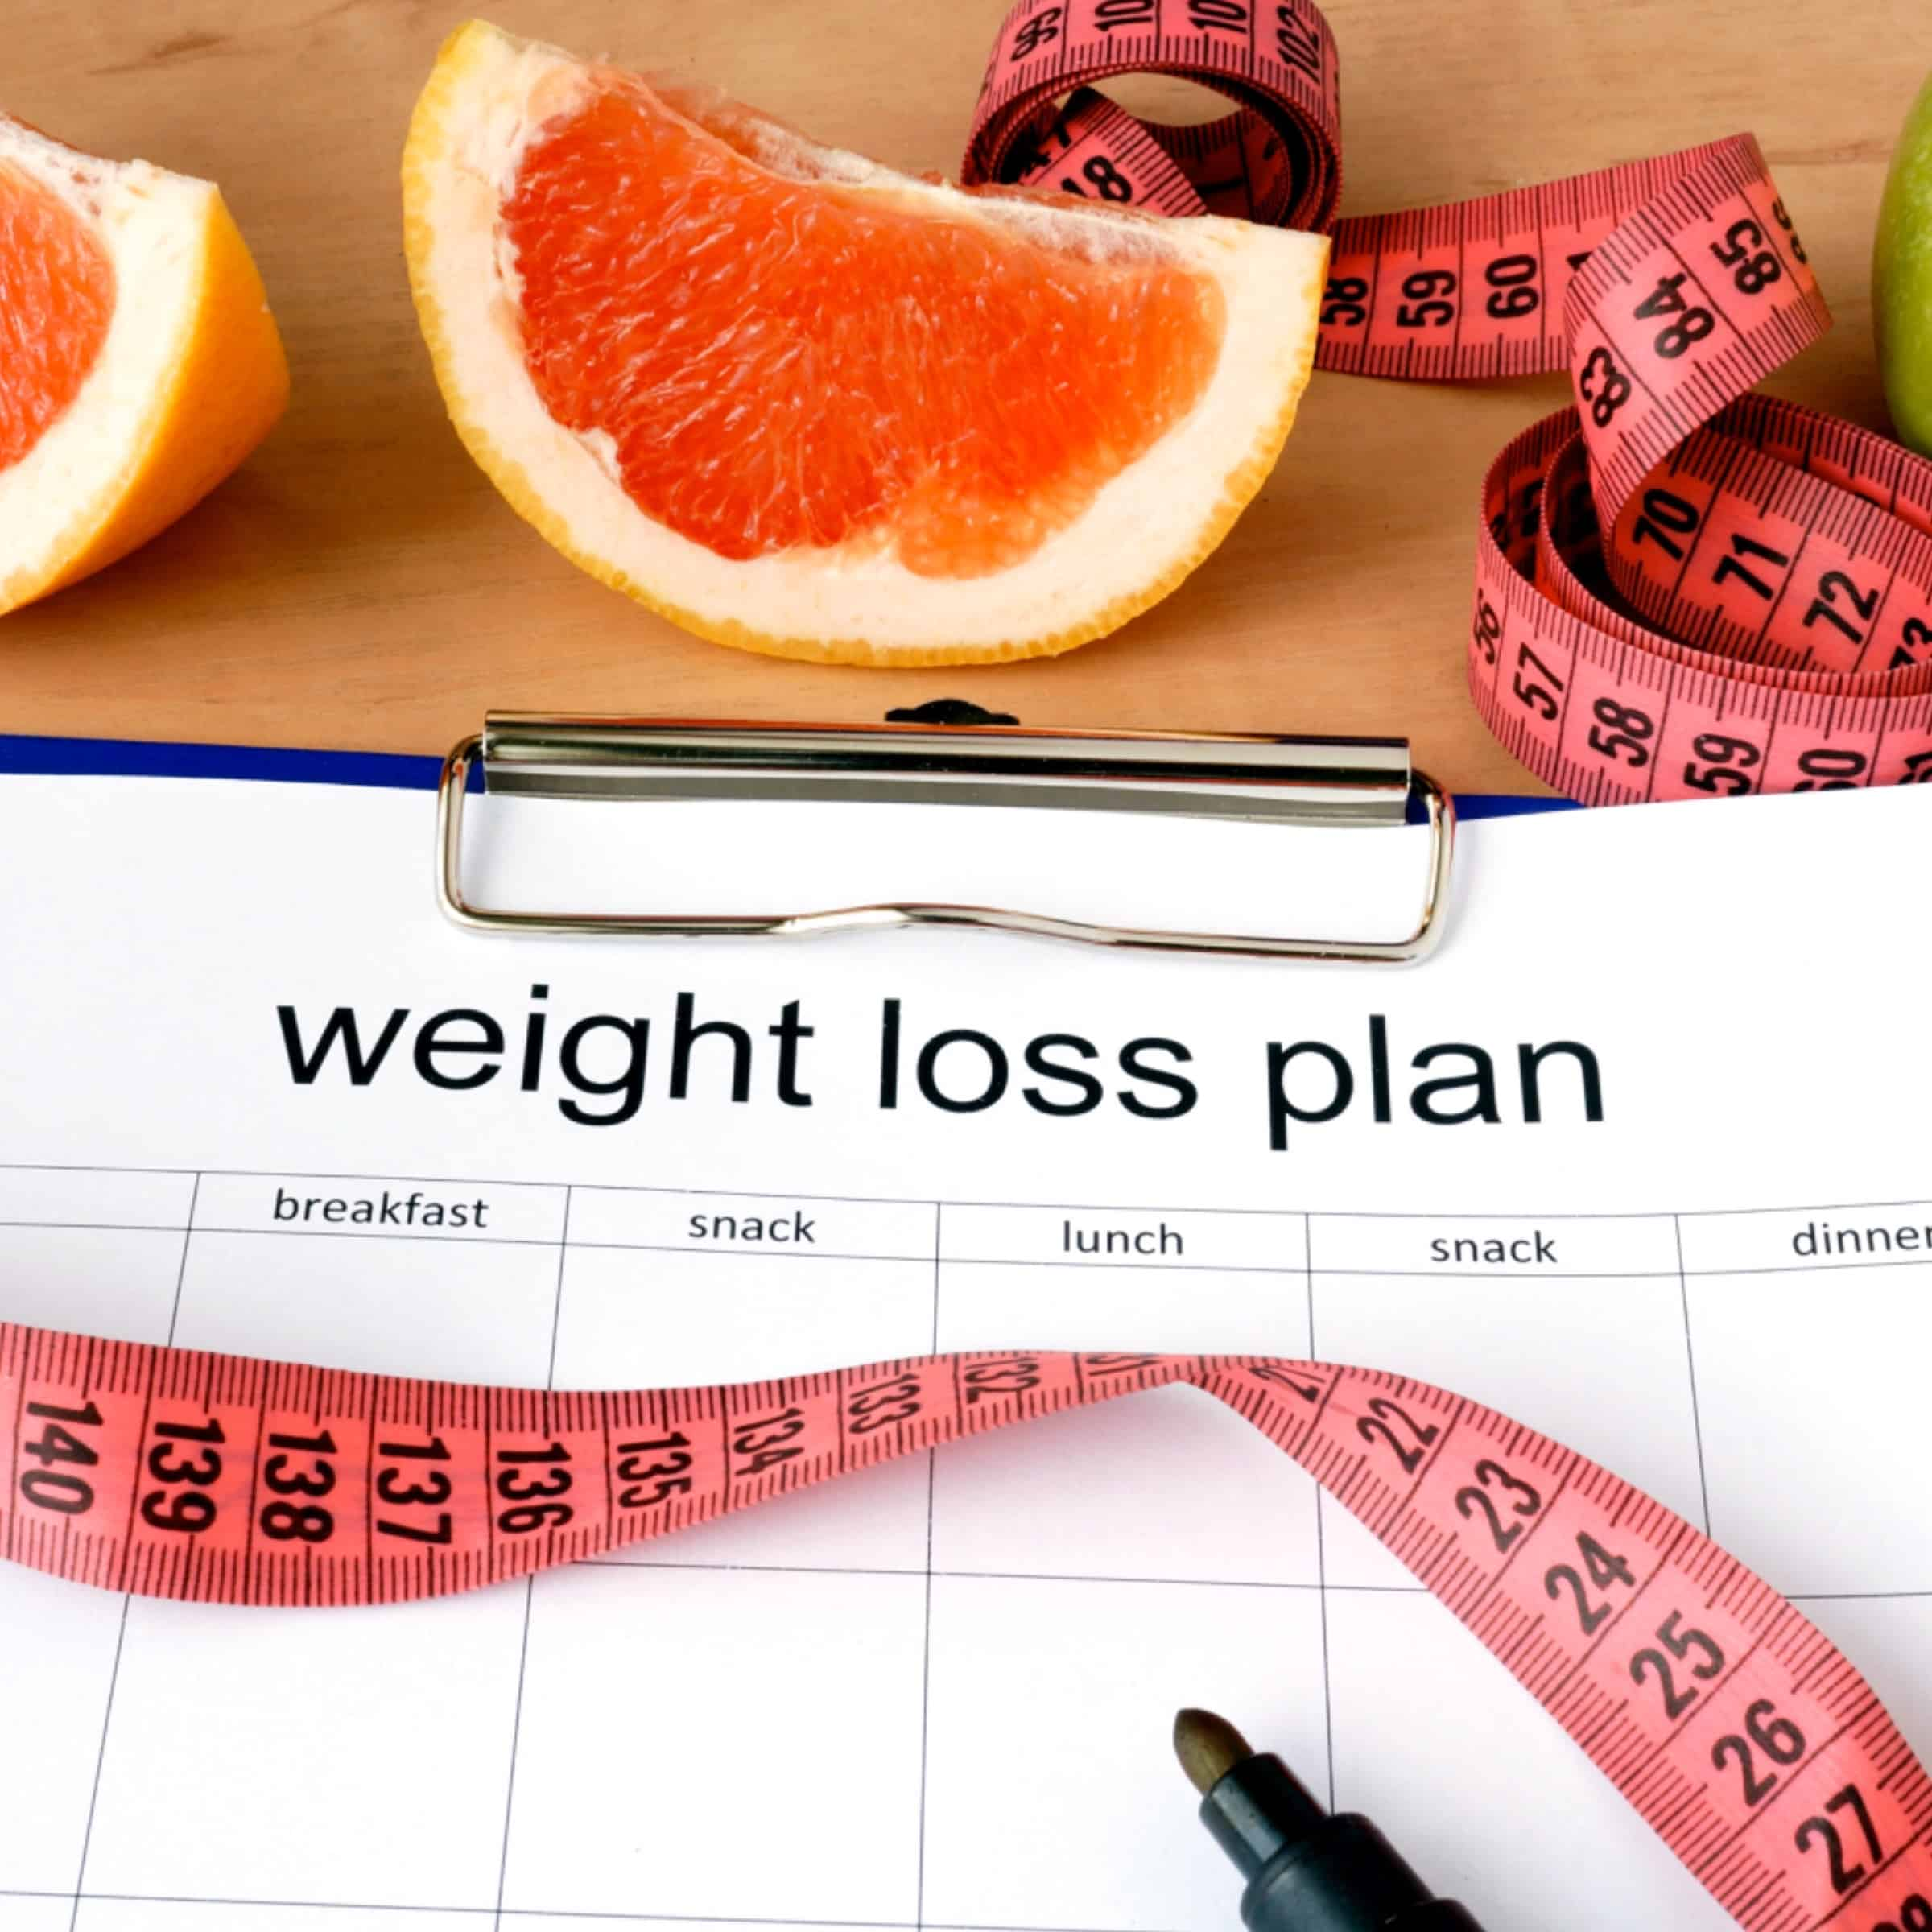 Weight Loss Doctor Near Me Orland Park IL